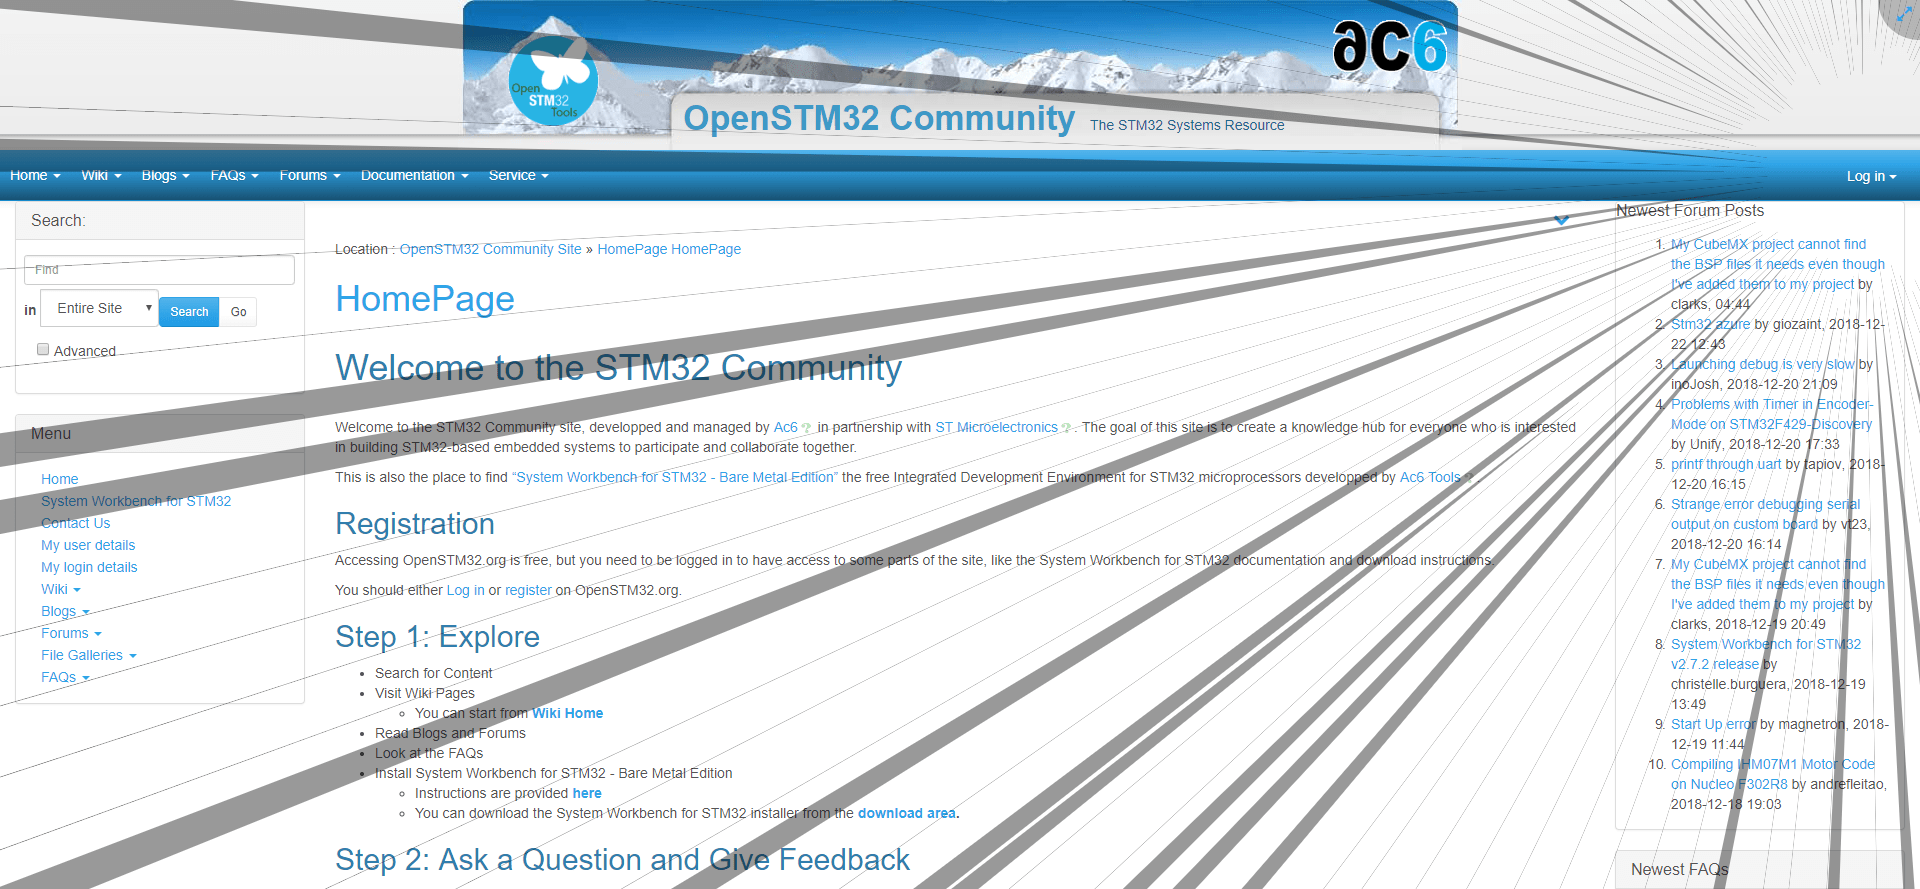 FireShot Capture 6 - OpenSTM32 Community Site I HomePage - http___www.openstm32.org_HomePage-min.png